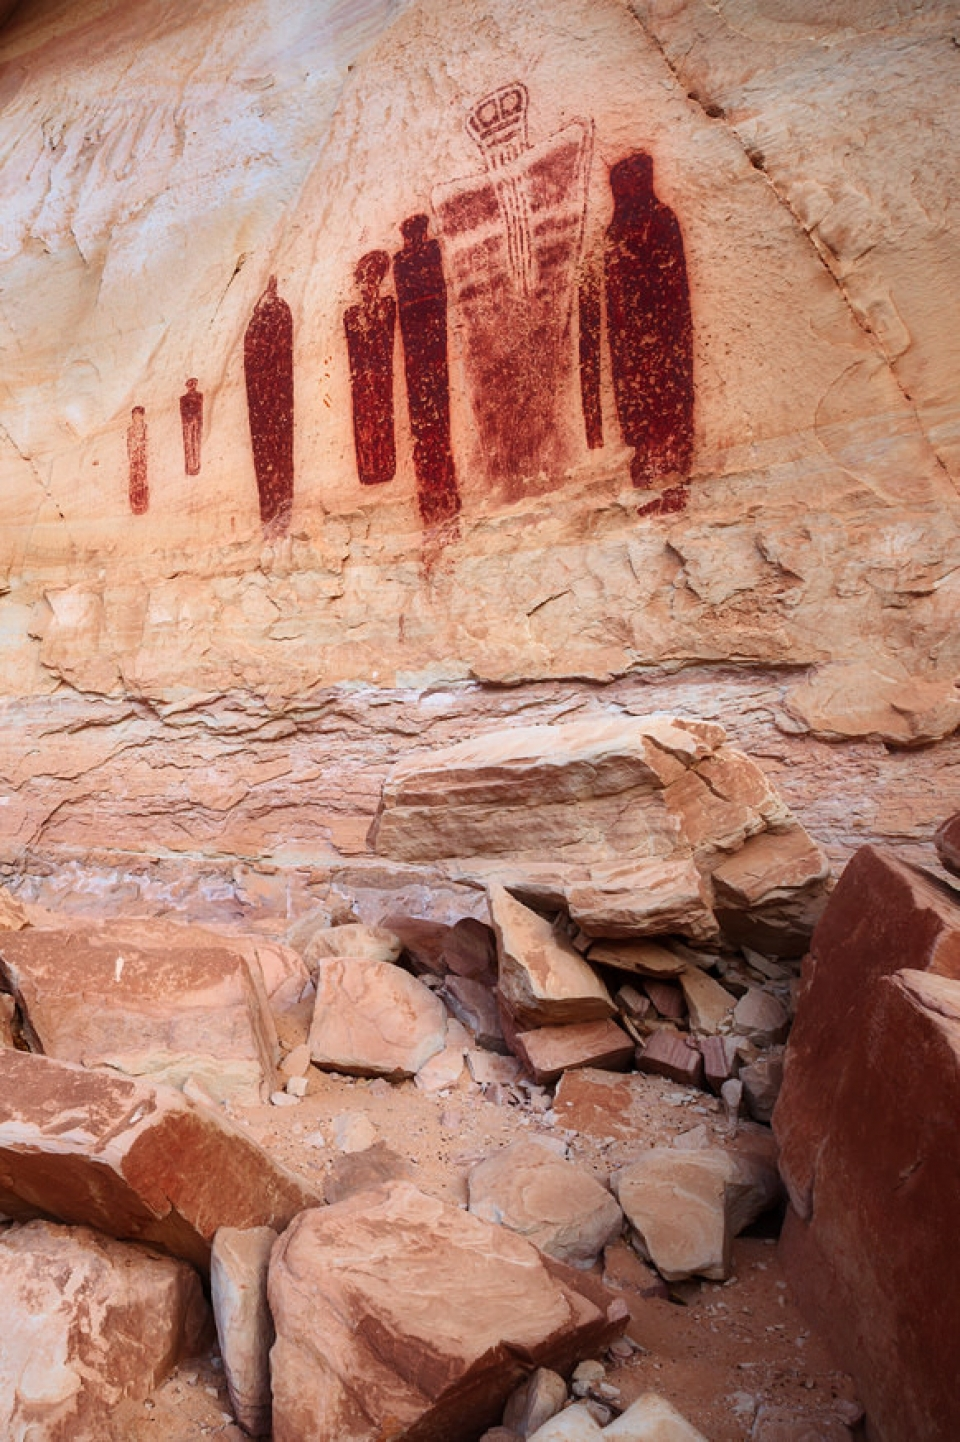 Red cave drawing inside Canyonlands National Park cave